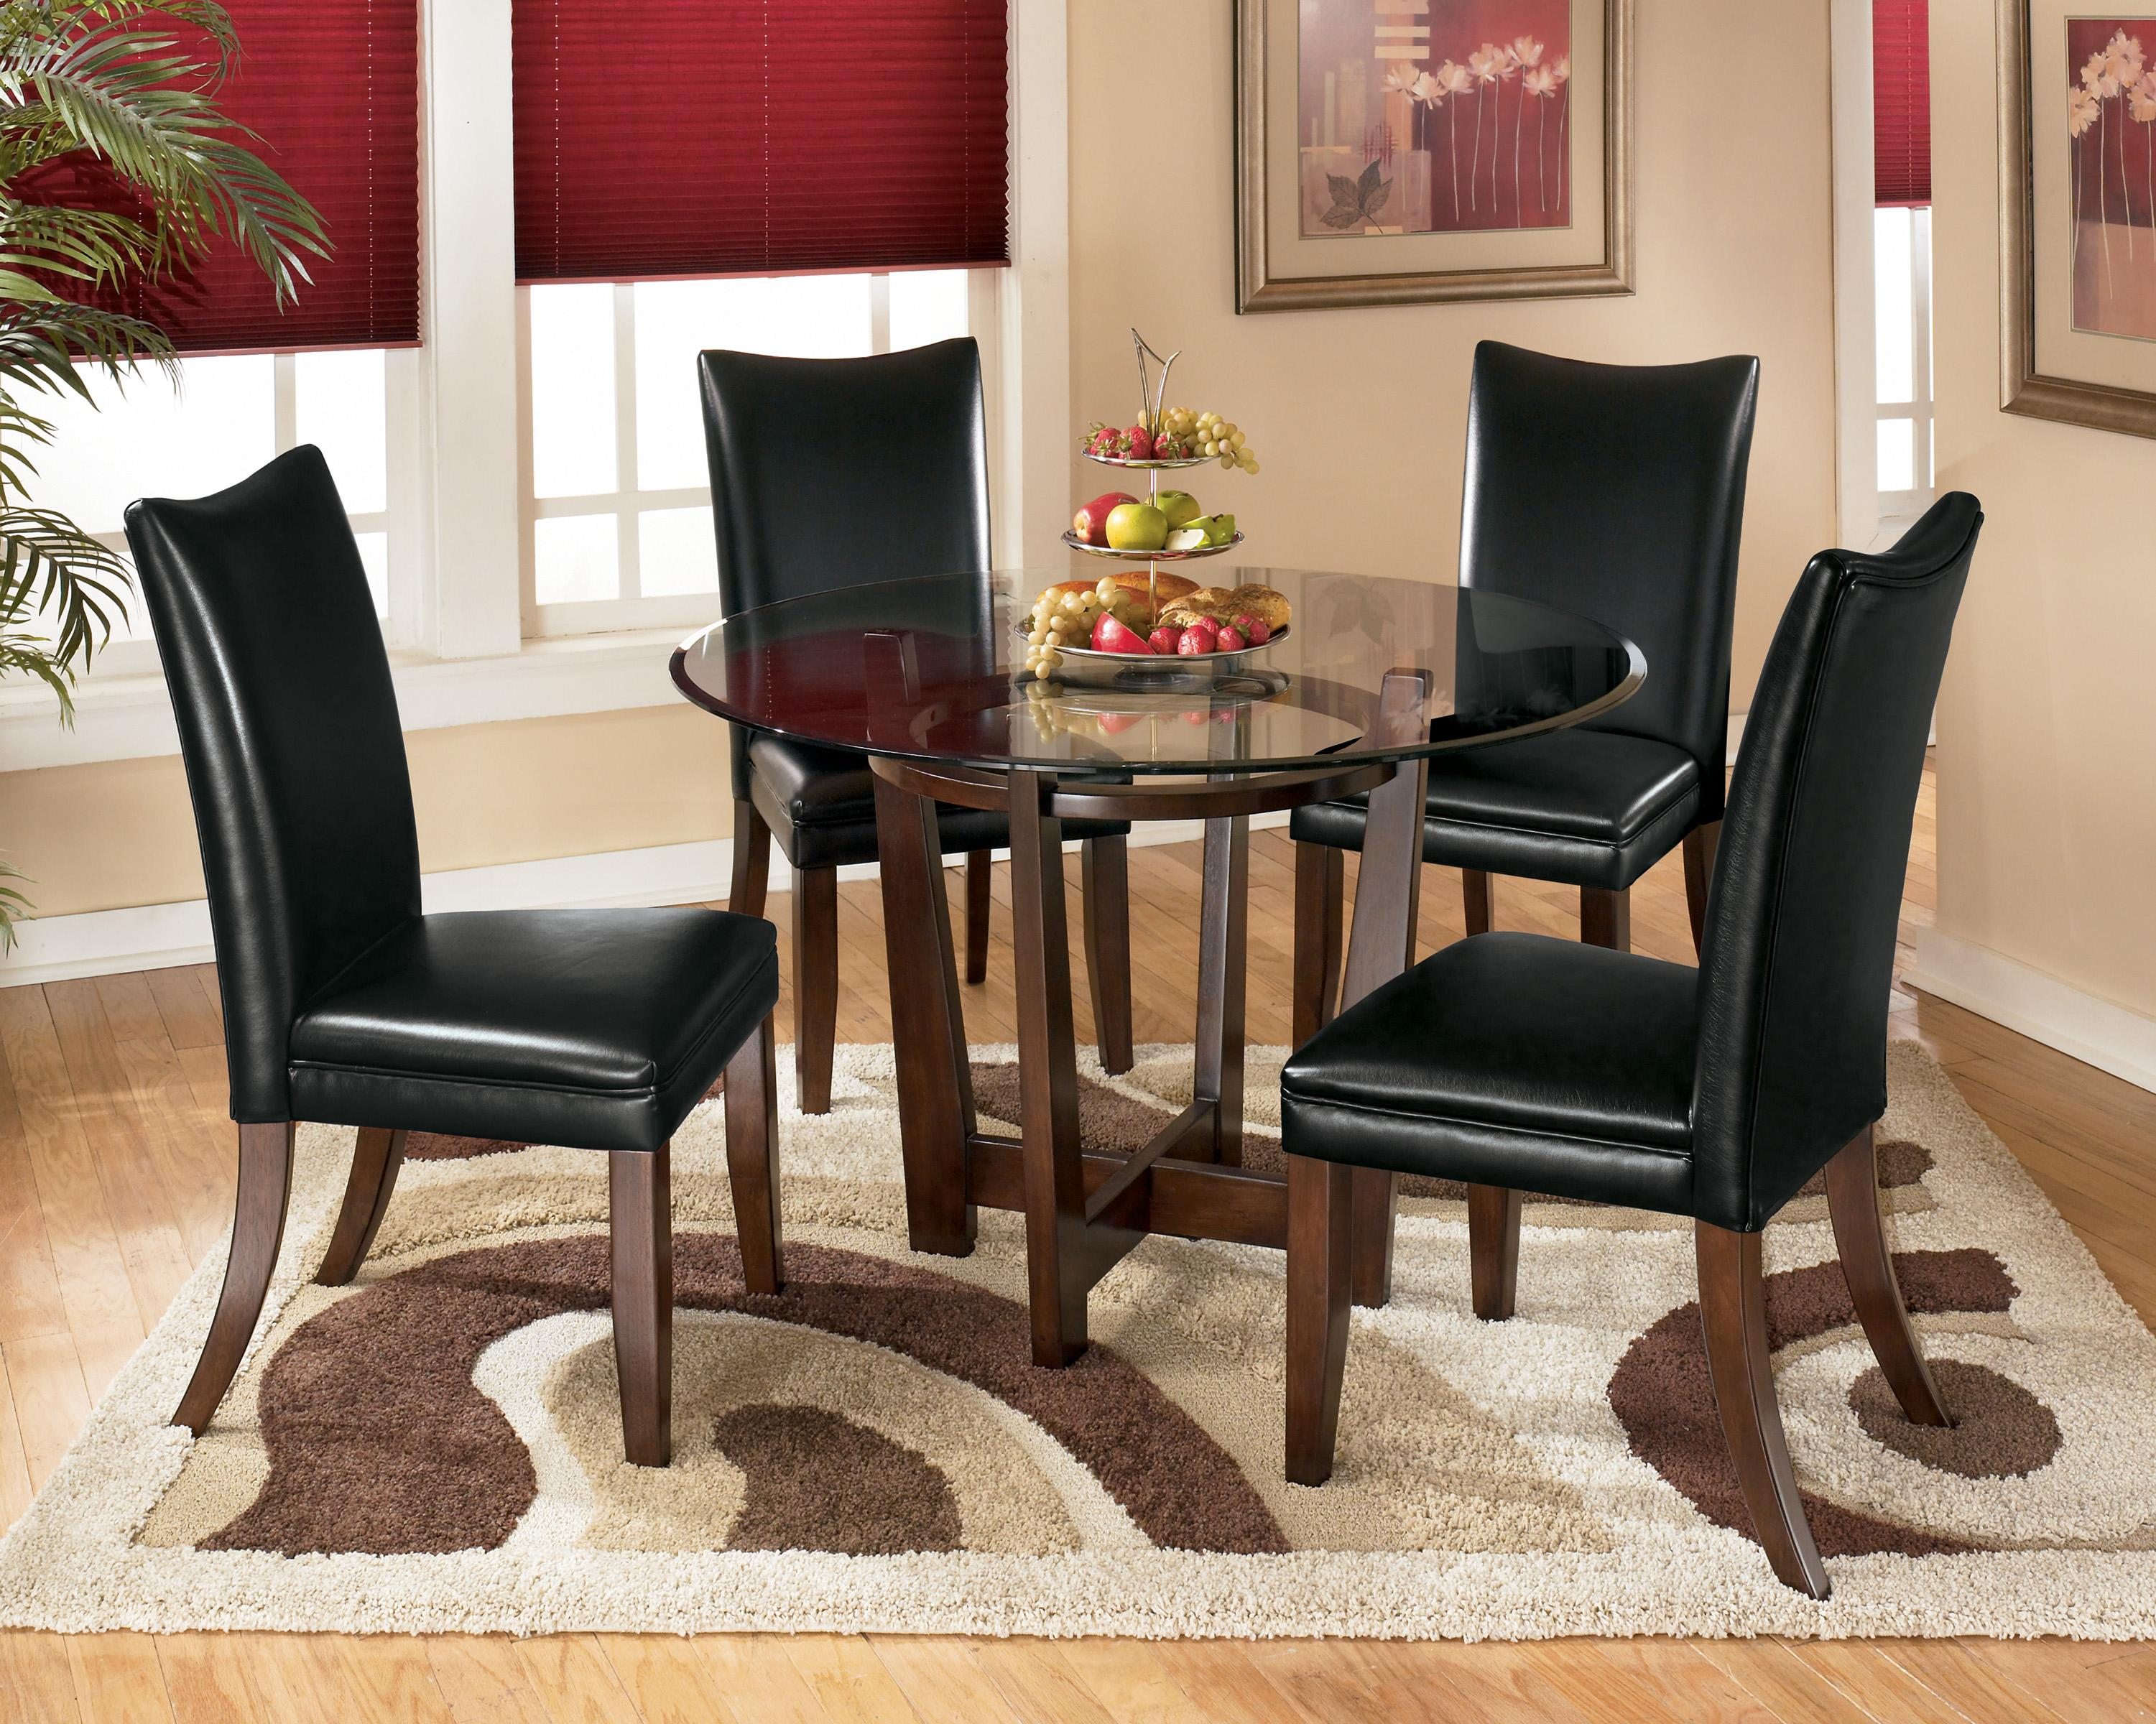 Charrell 5 Piece Round Dining Table Set with Black Chairs by Ashley  Signature Design at Dunk & Bright Furniture